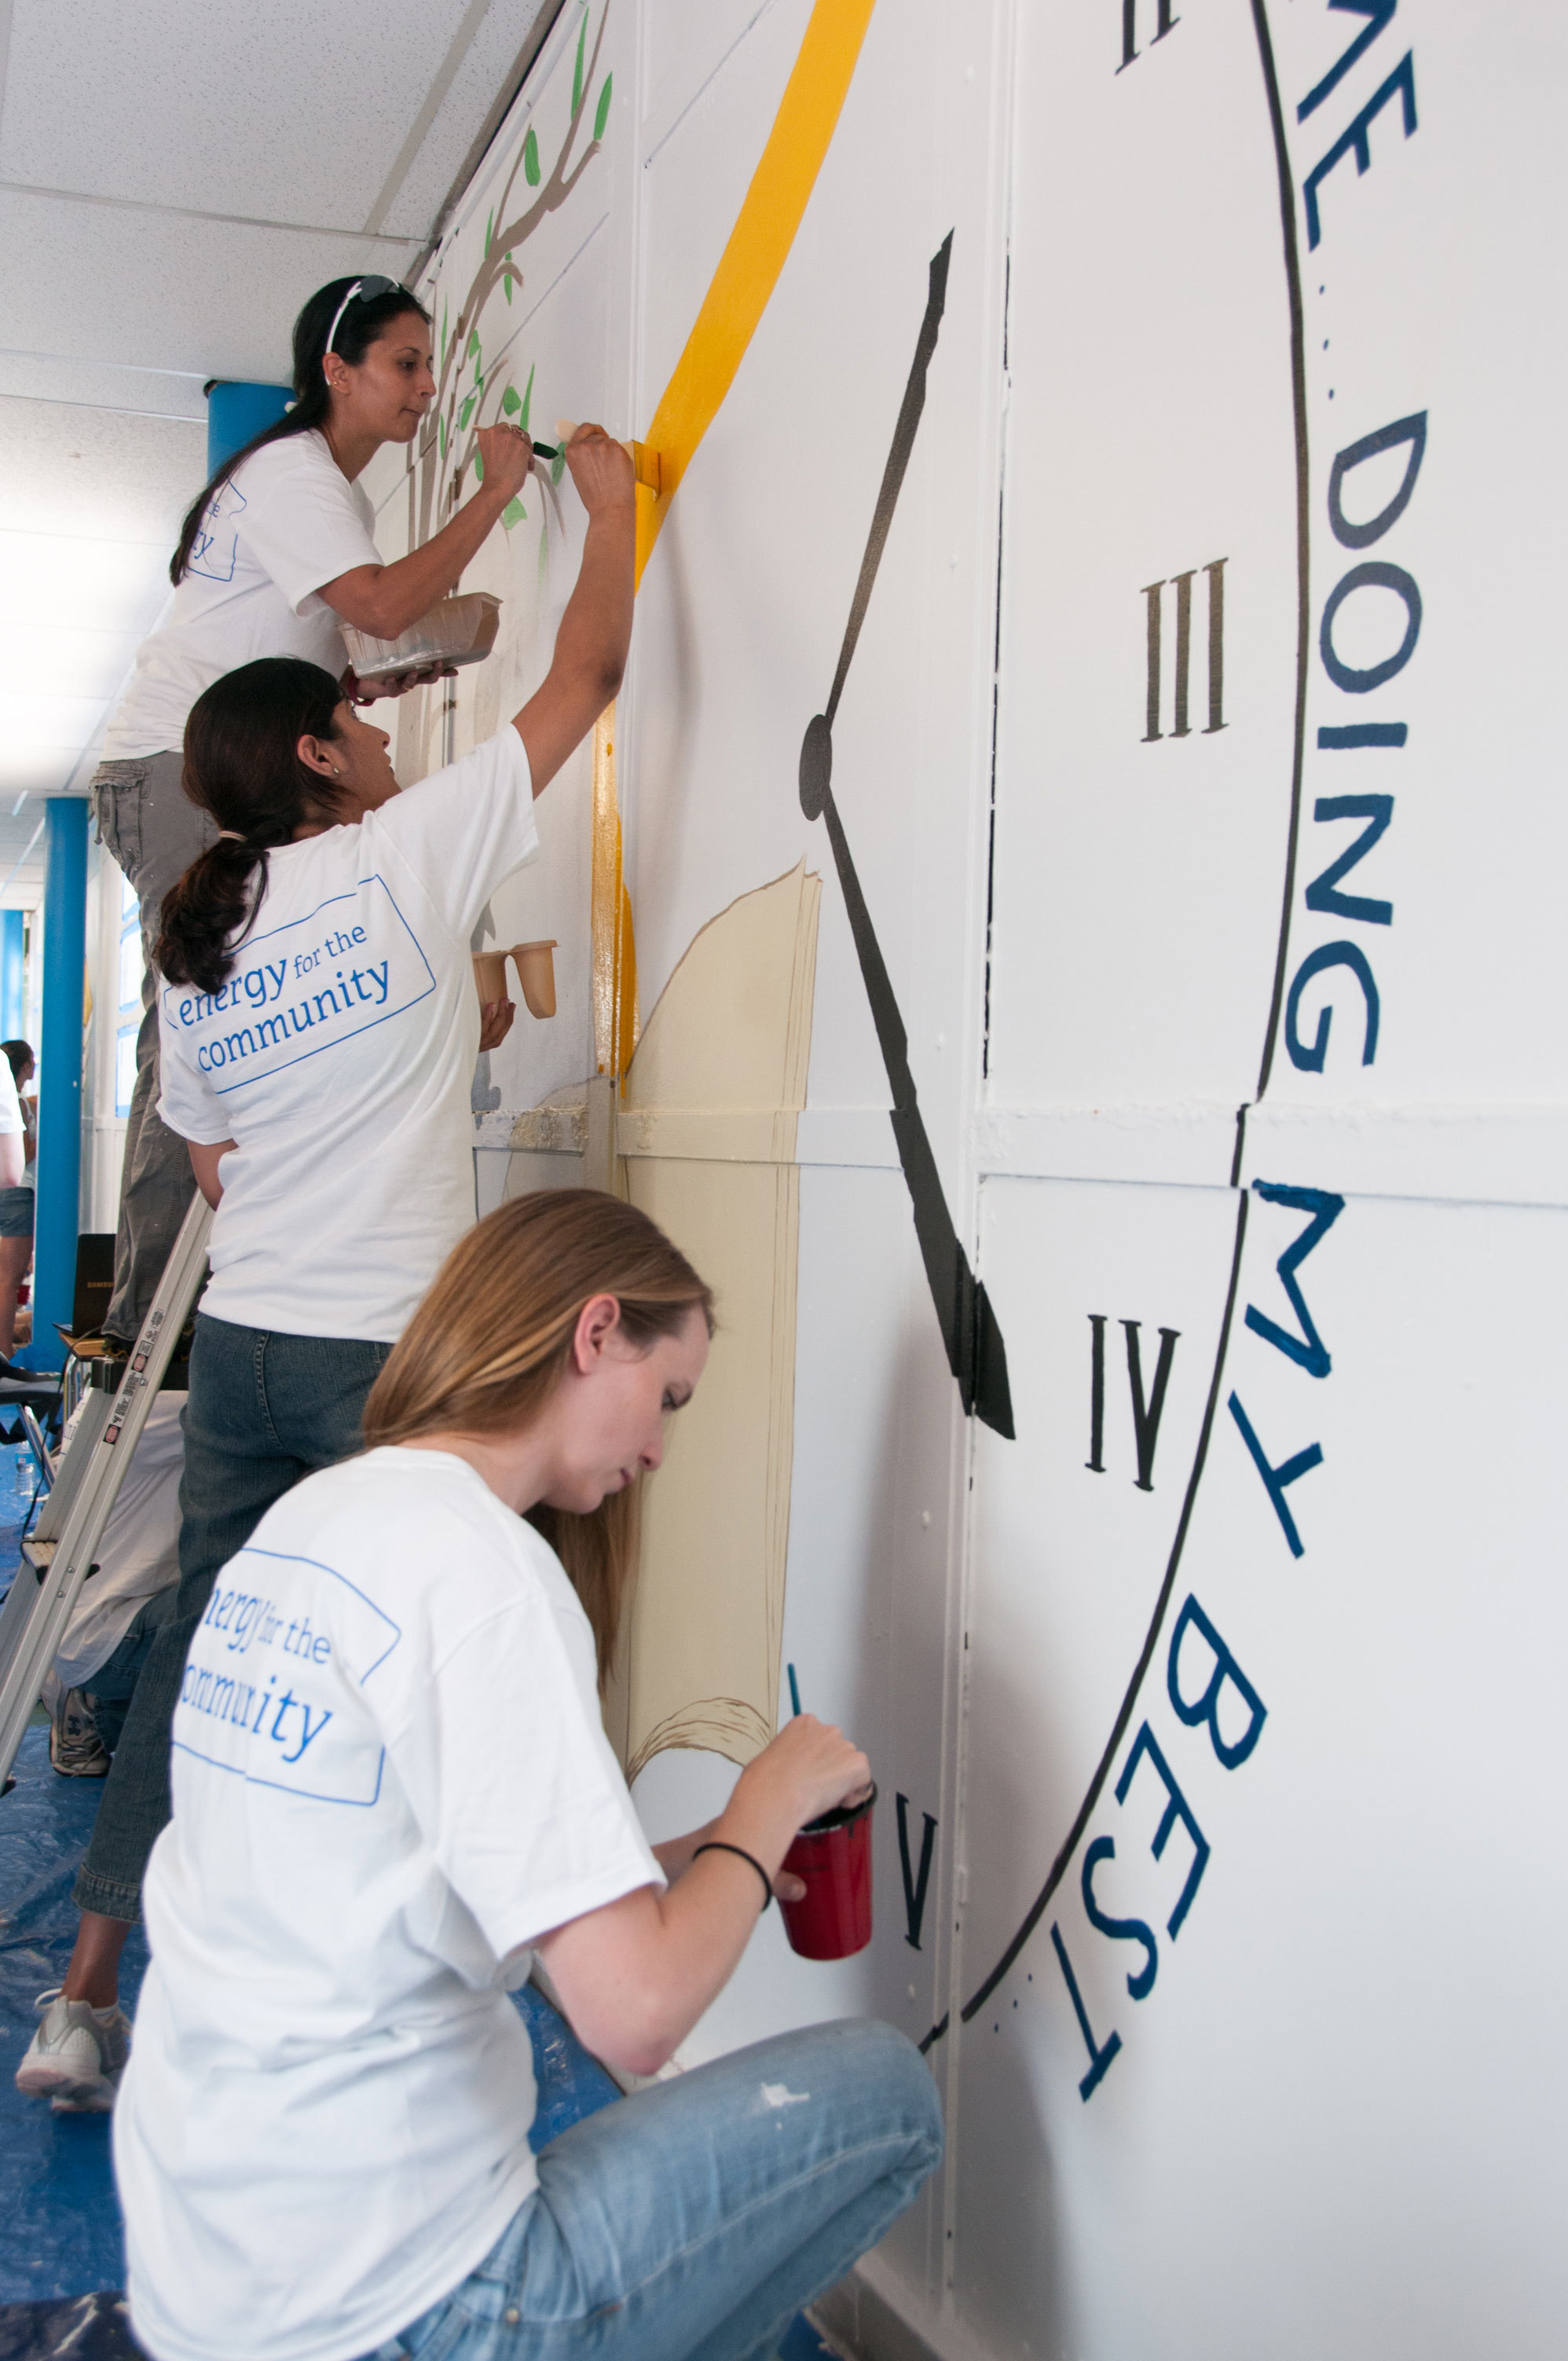 Employee volunteers from Constellation paint classrooms at the Crossroads School in Baltimore, on August 5, 2014. Over 100 Constellation employees participated in the school makeover event to clean and prepare classroom space for the school year. (Photo: Business Wire)